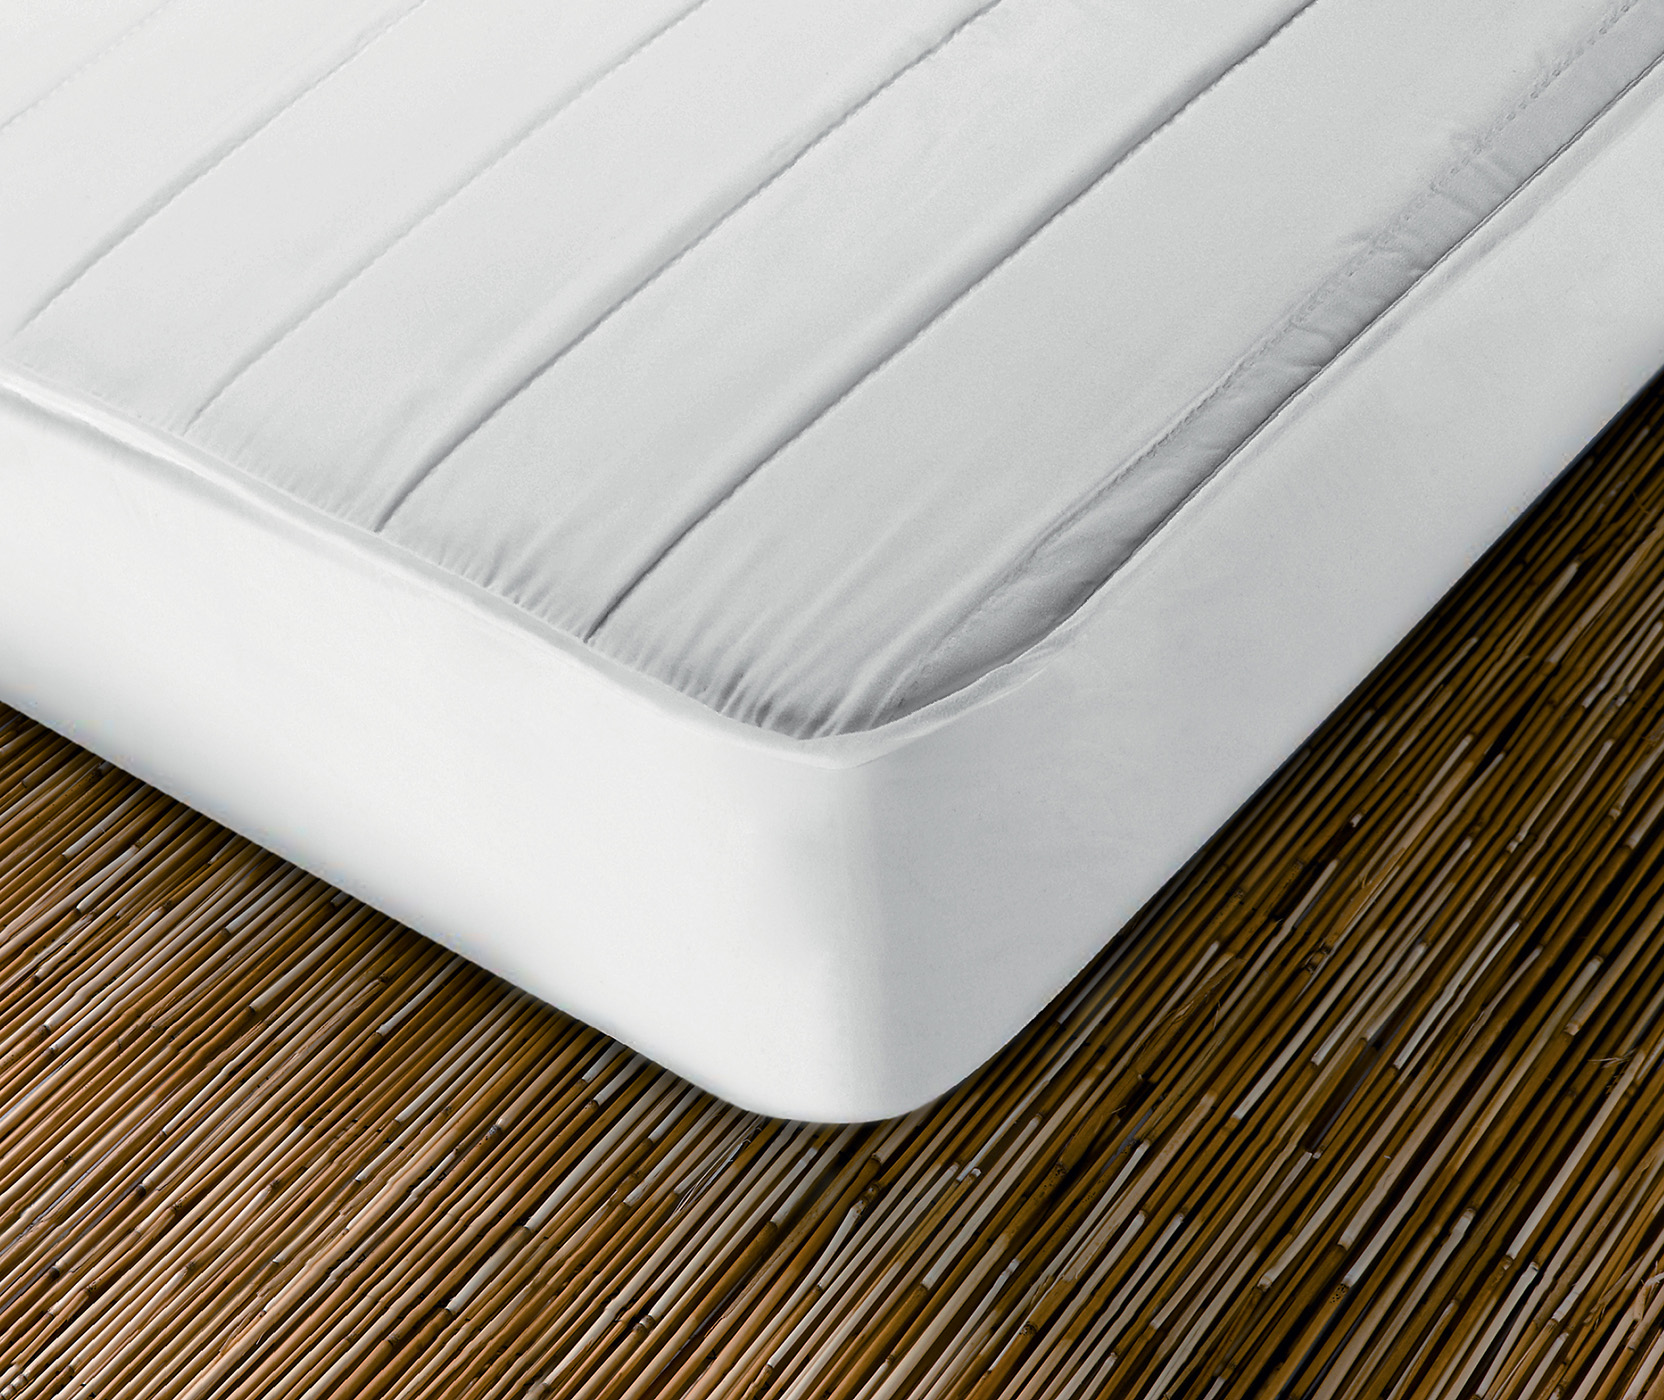 What is a mattress protector and what is it used for?